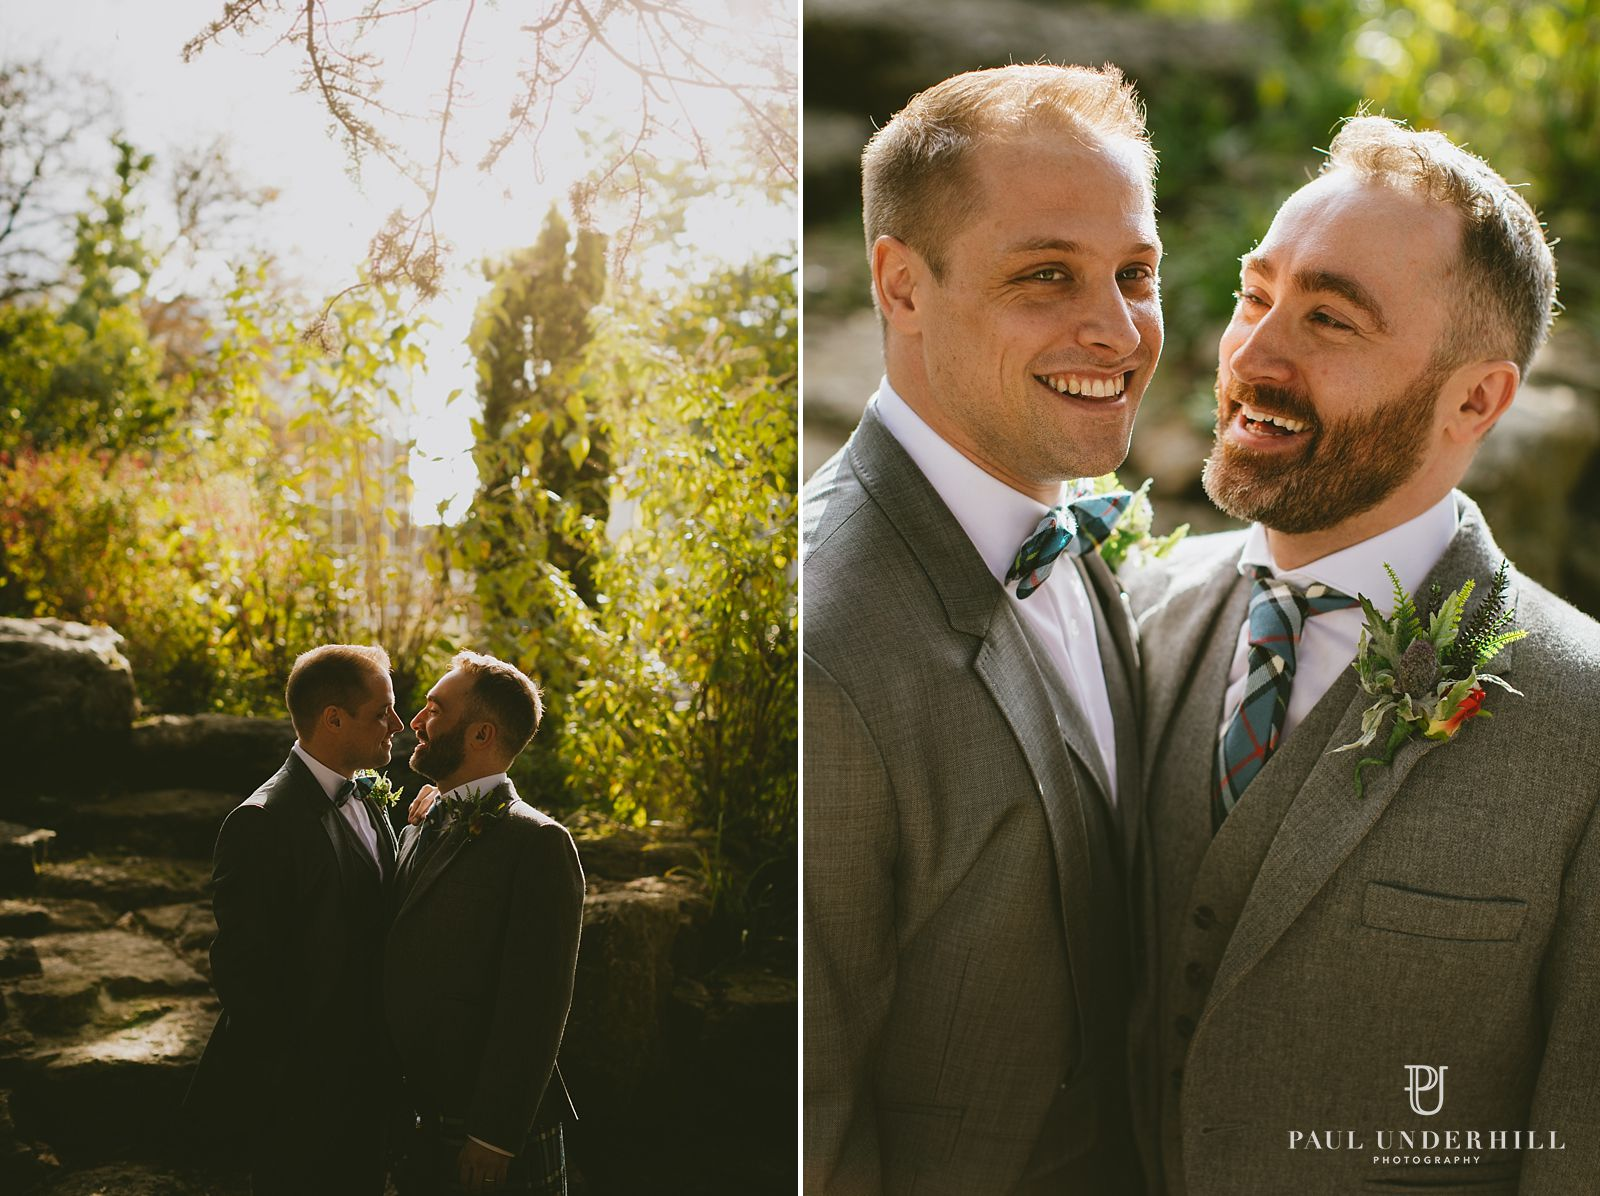 portraits-of-grooms-gay-wedding